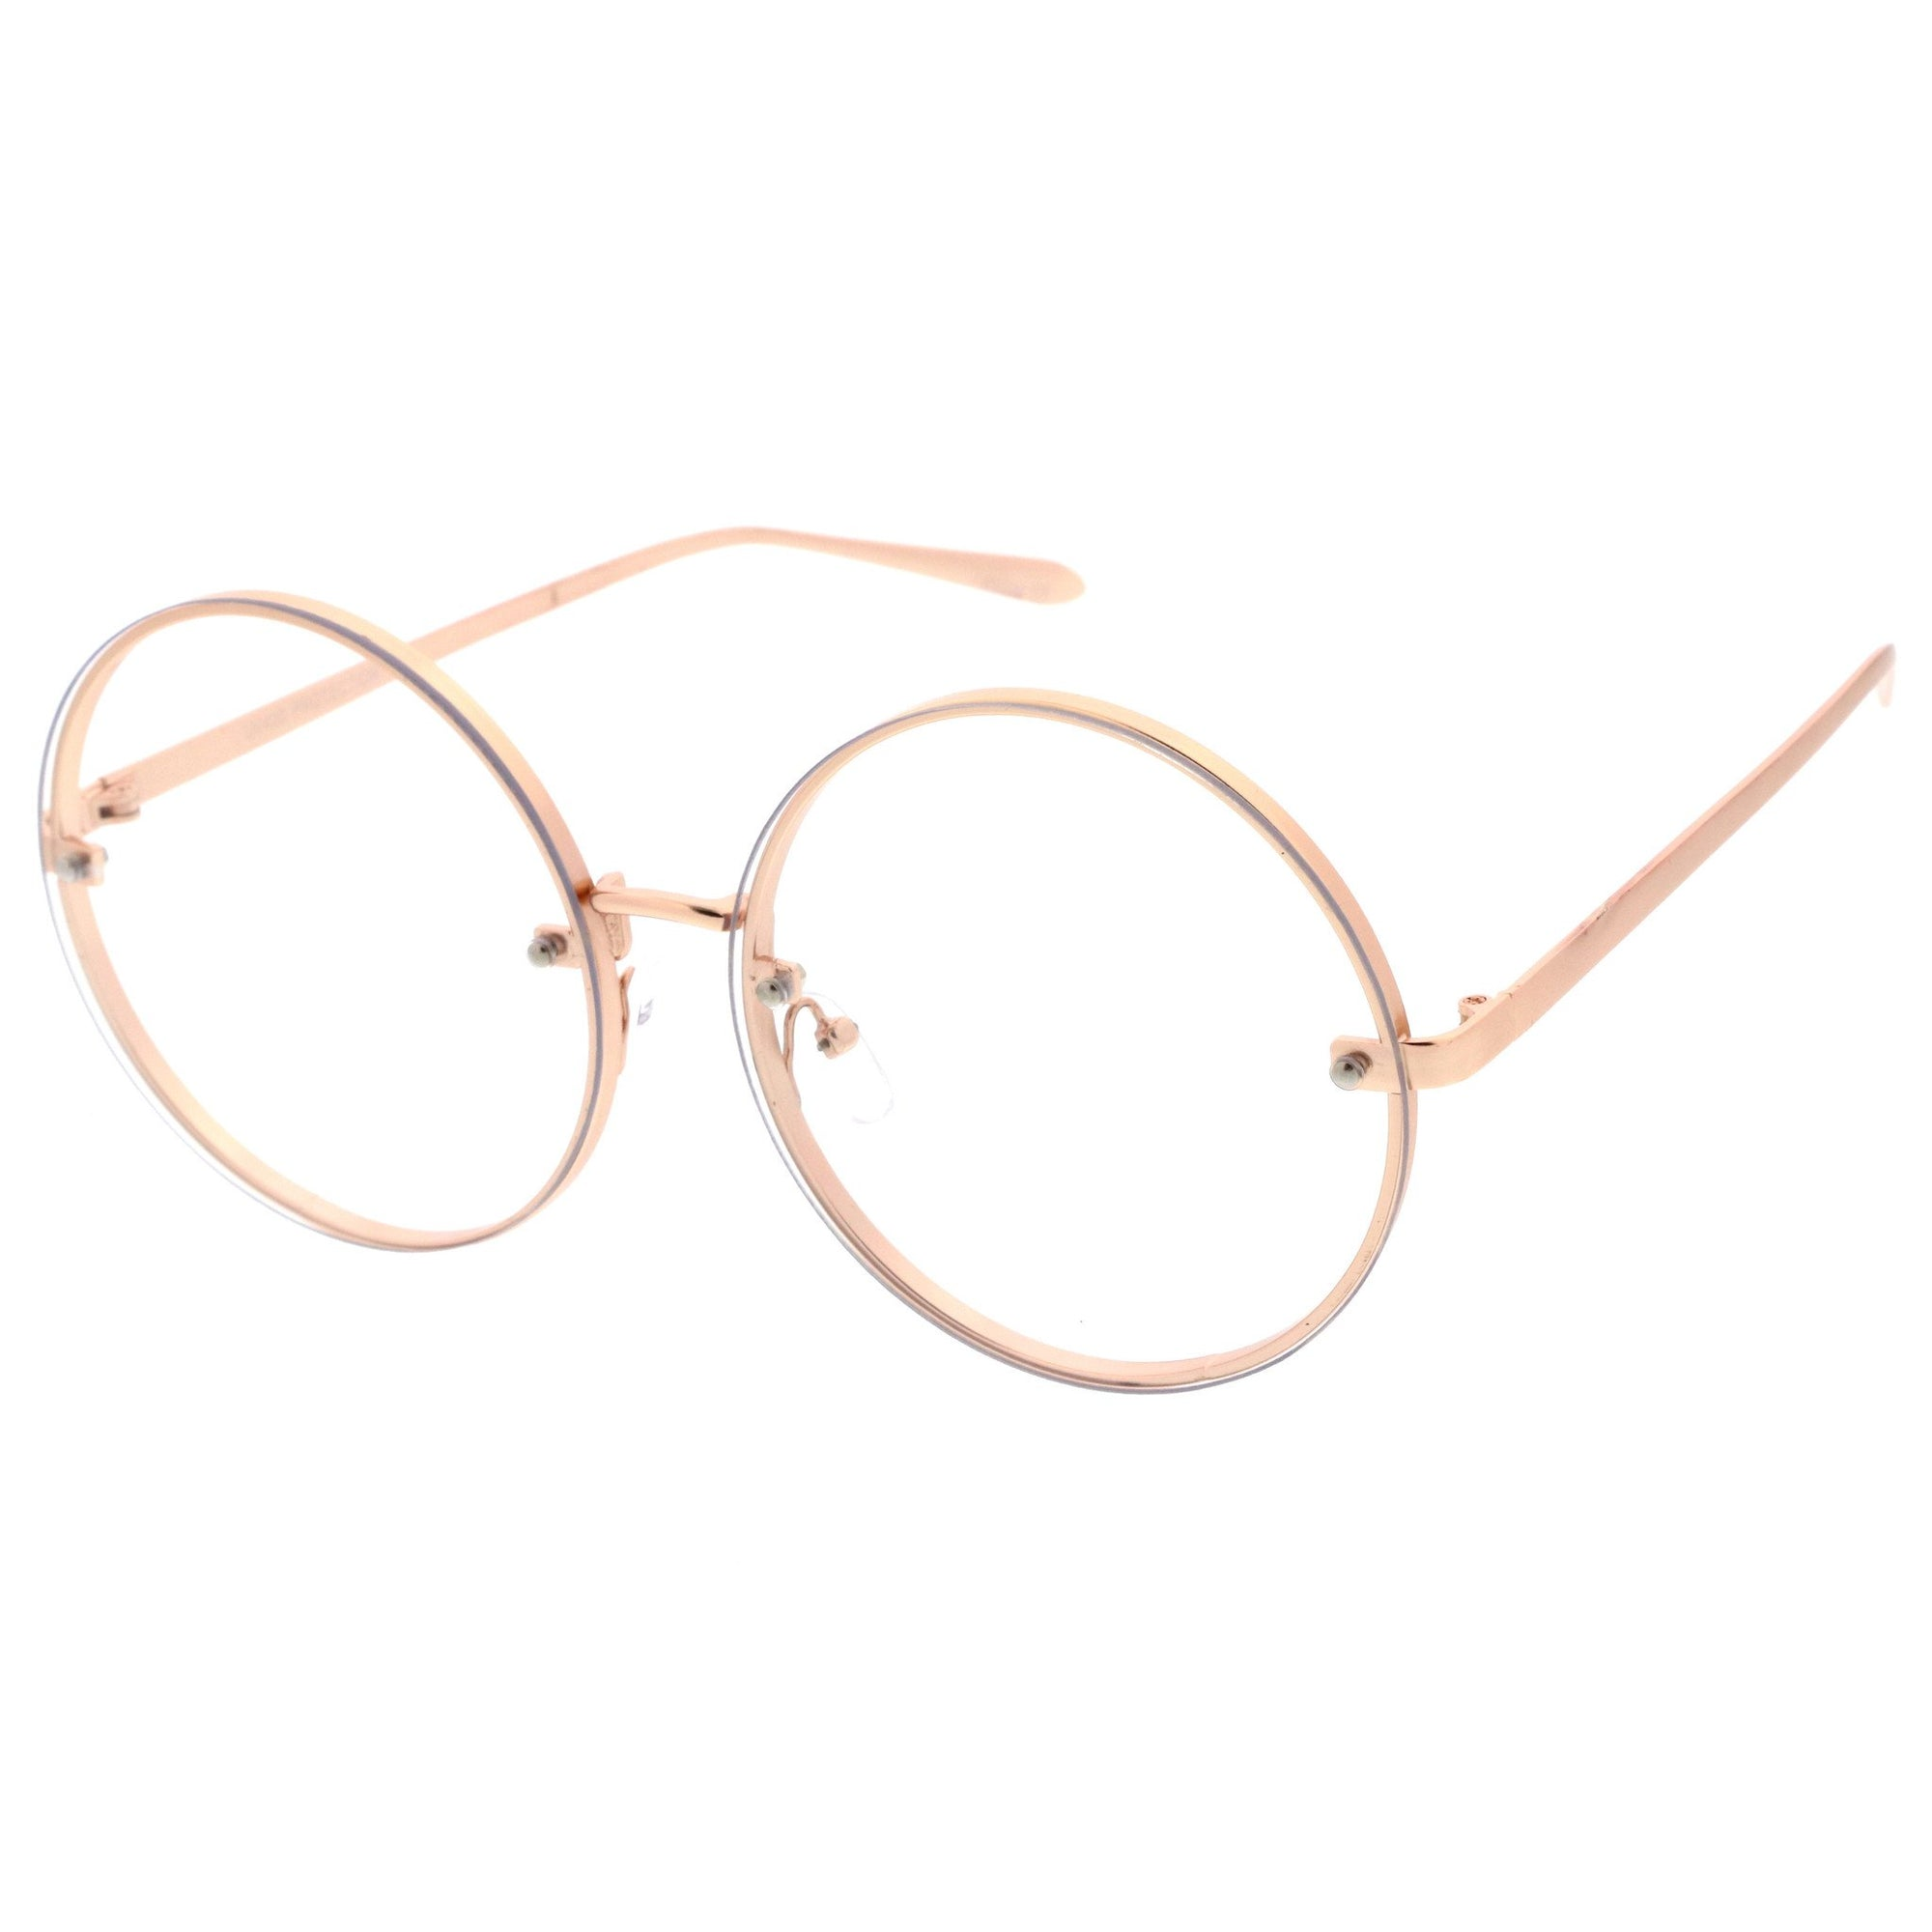 8f699905d648 ... Modern Oversize Infinity Round Clear Lens Glasses A896 · Gold Clear ·  Gold Clear